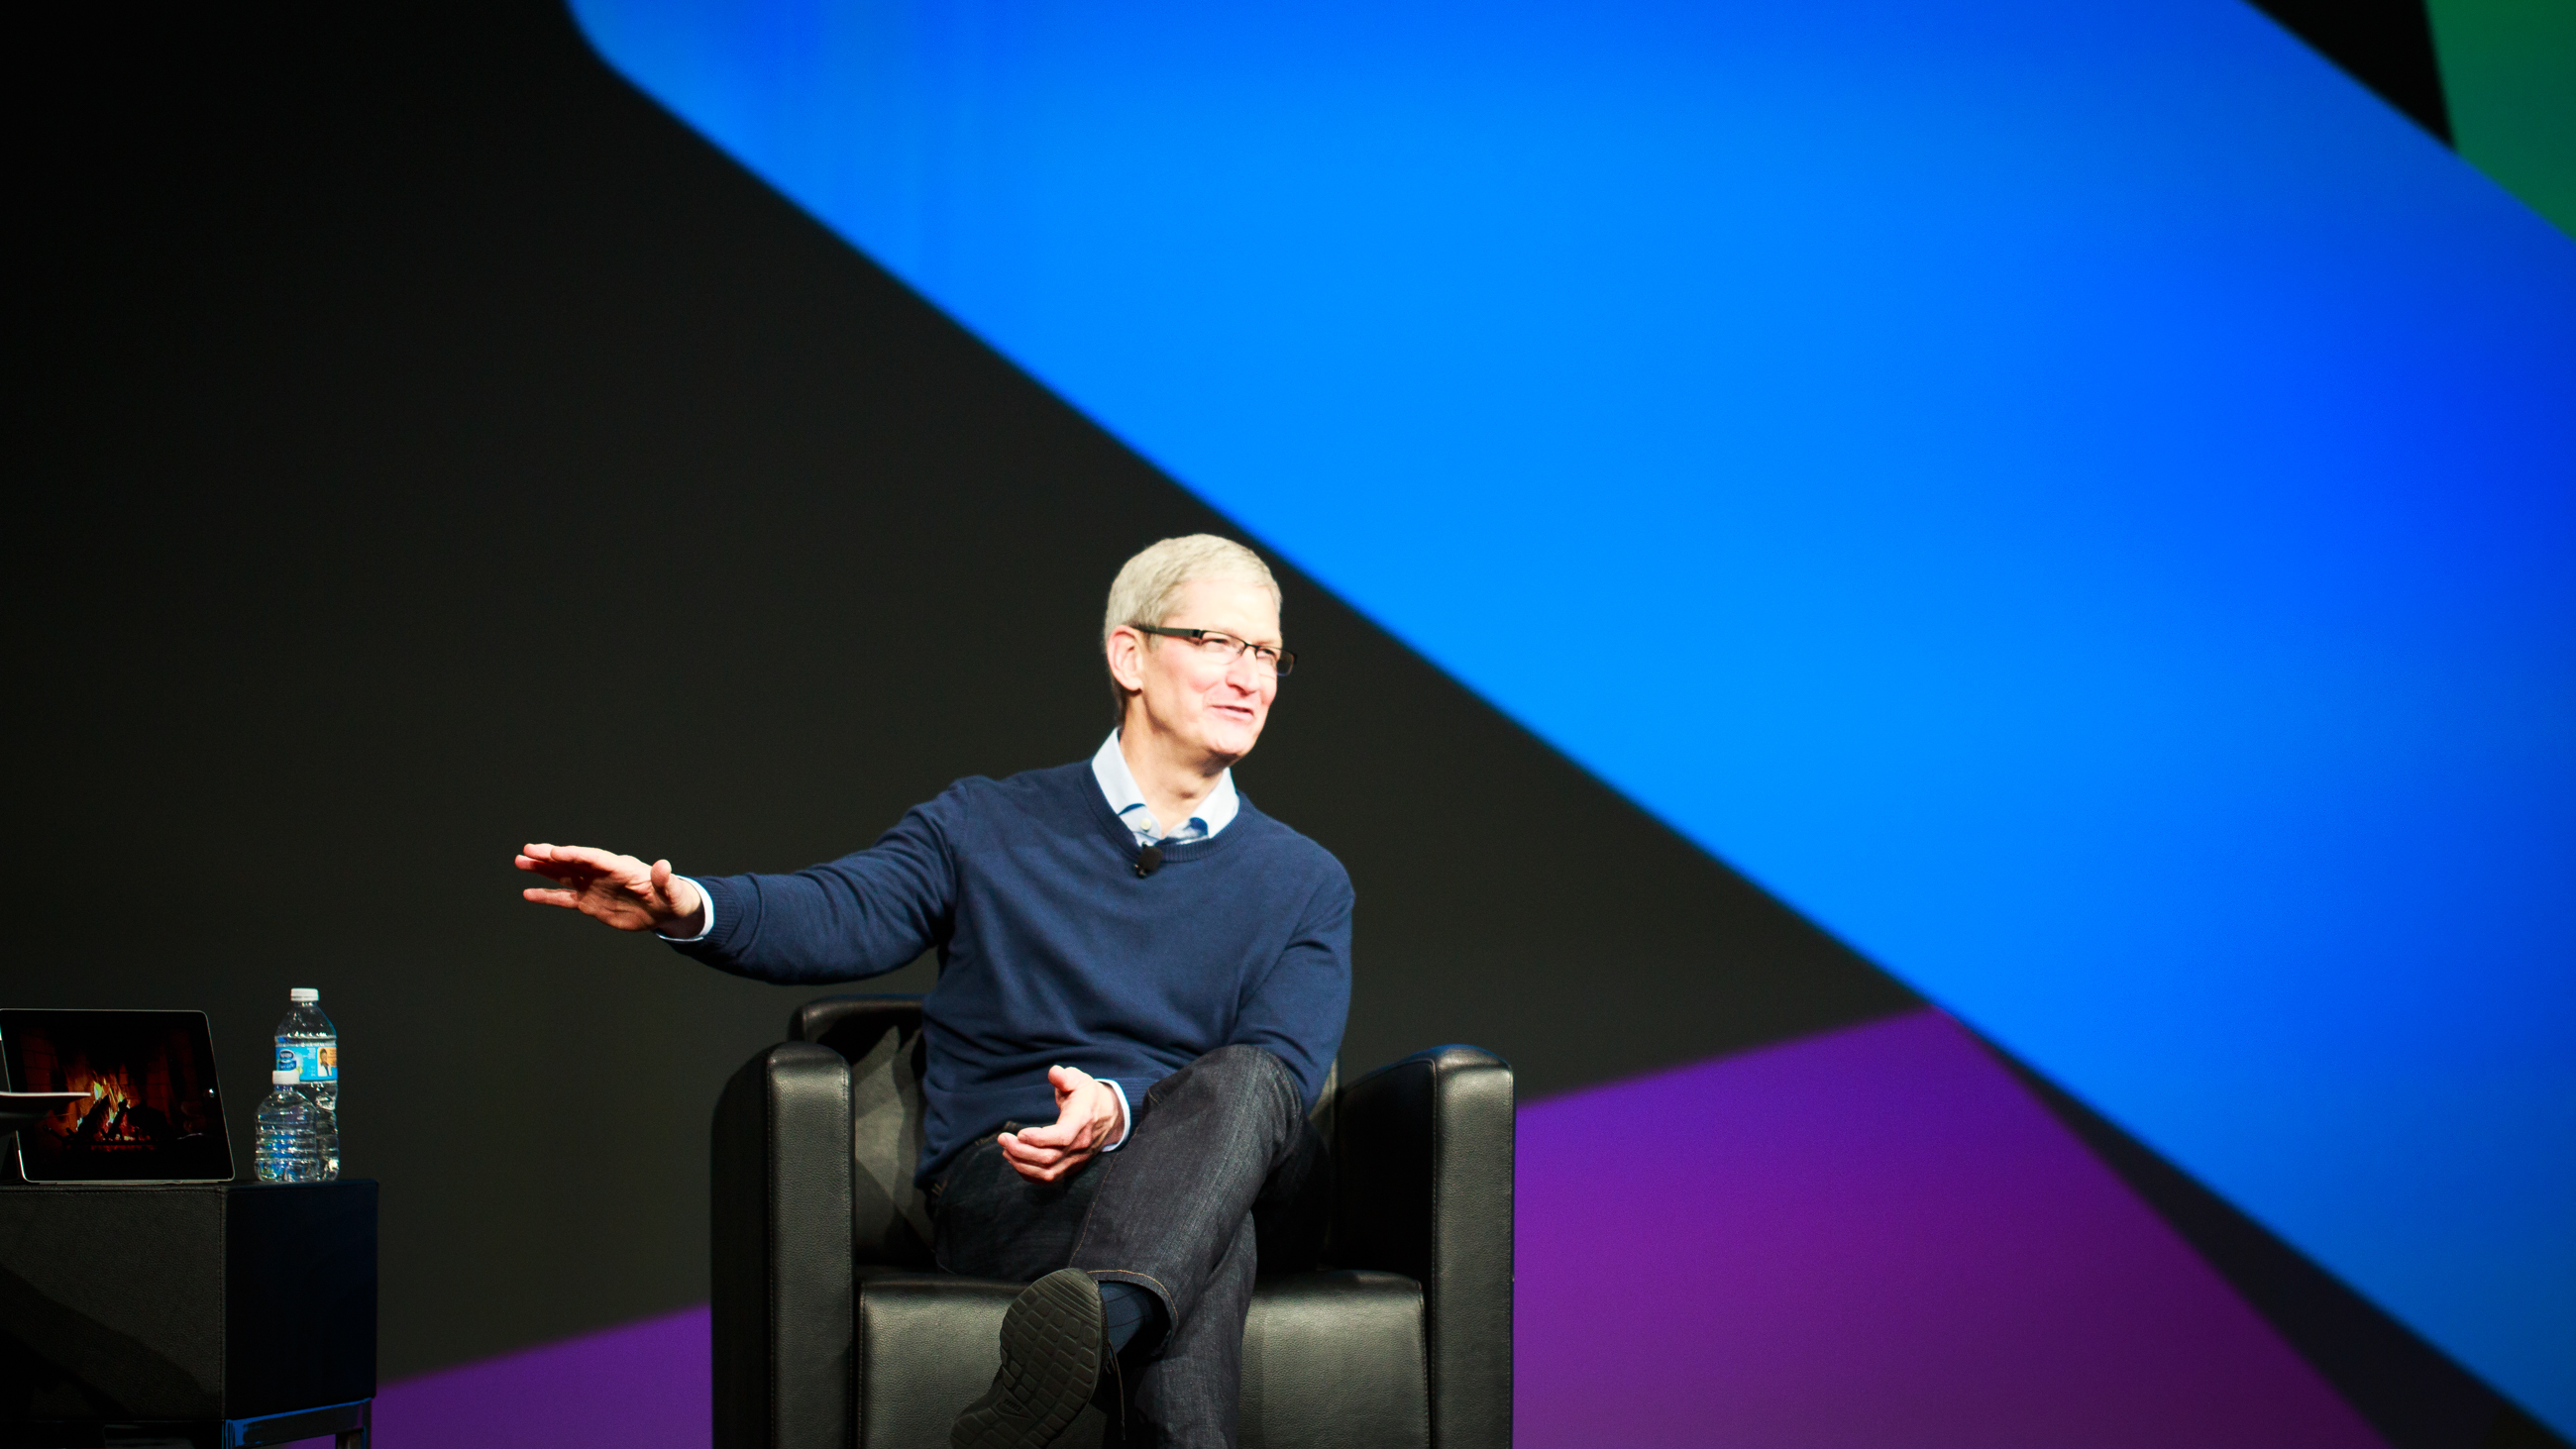 <p>Aaron Levie, Co-founder and CEO of Box speaks with Tim Cook, CEO of Apple at BoxWorks 2015 in San Francisco, CA.  Photo by Josh Miller/CNET</p>